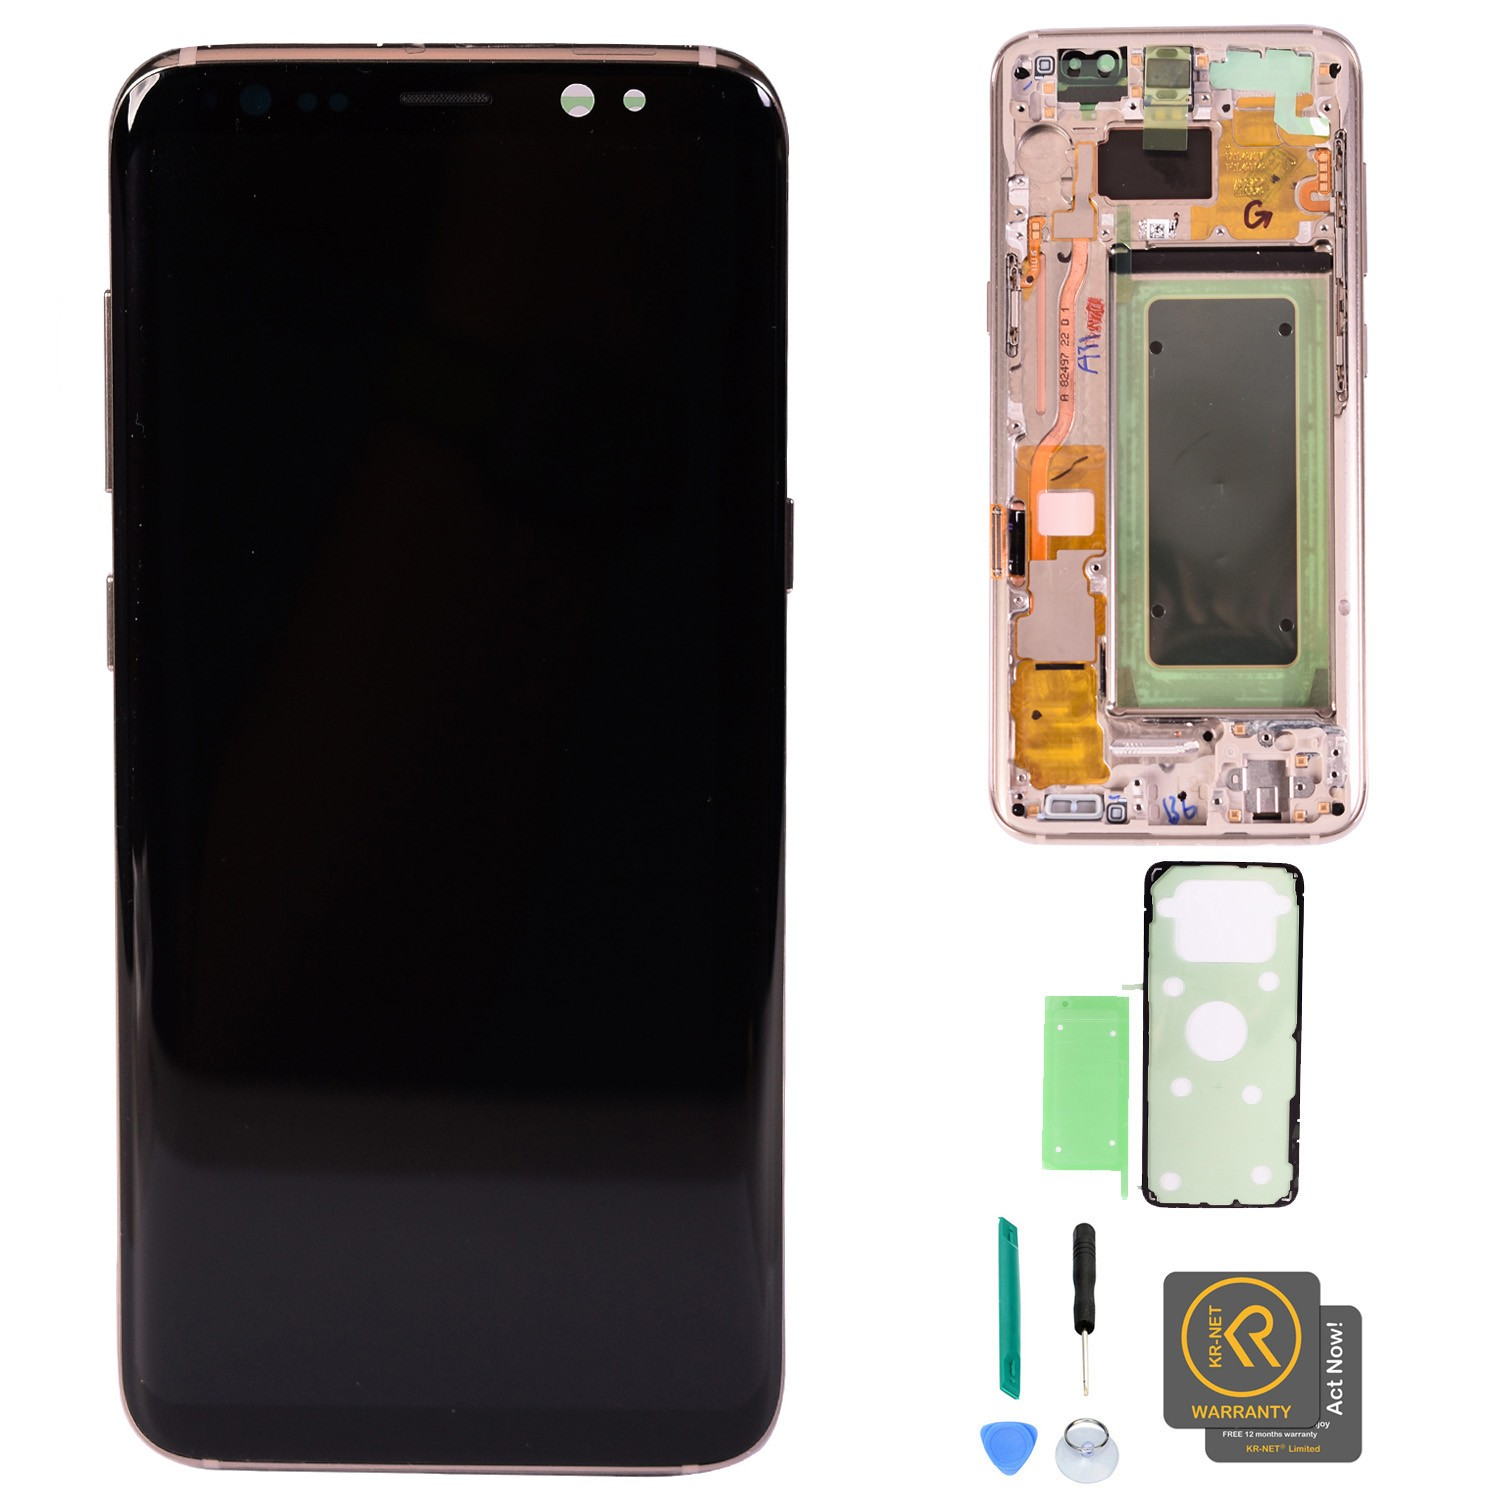 Galaxy S3 Parts Diagram Lcd Display Screen Digitizer assembly Replacement for Samsung Galaxy Of Galaxy S3 Parts Diagram